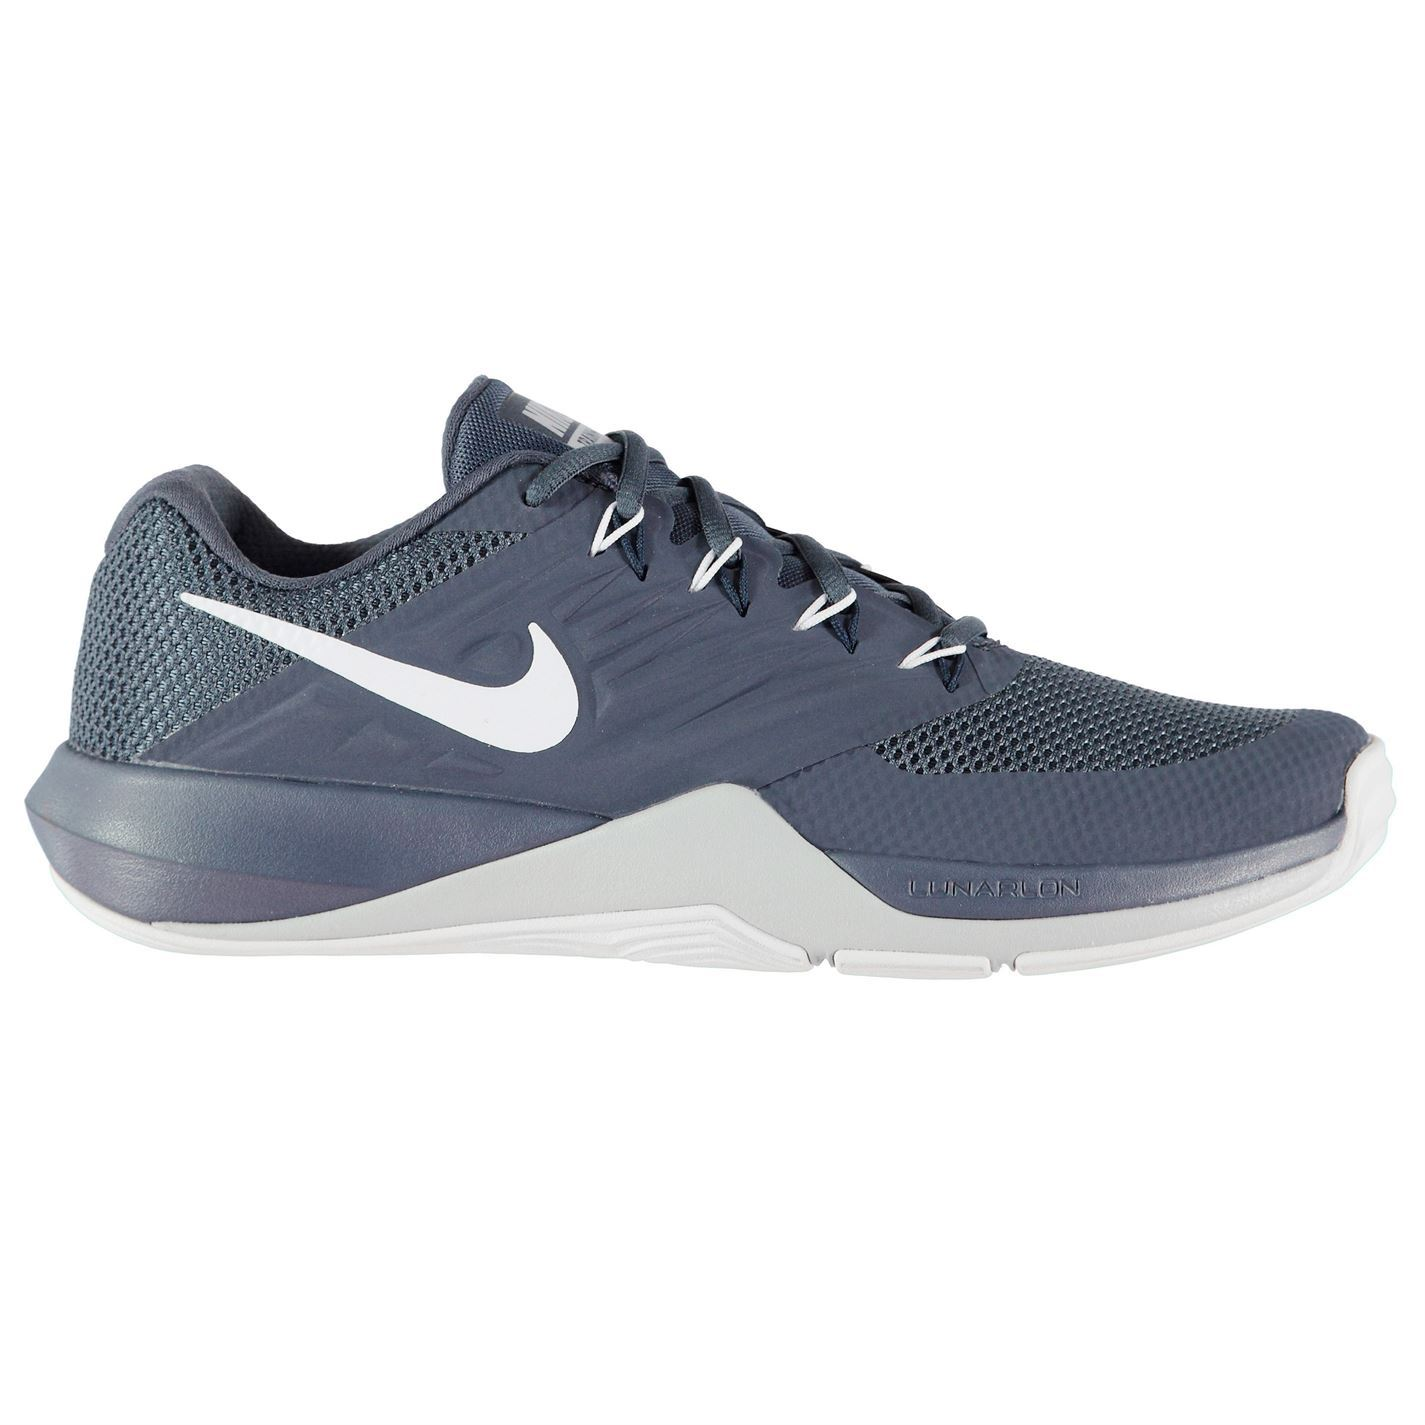 a52f05de8b73 ... Nike Lunar Prime Iron 2 Fitness Training Shoes Mens Blue White Trainers  Sneakers ...